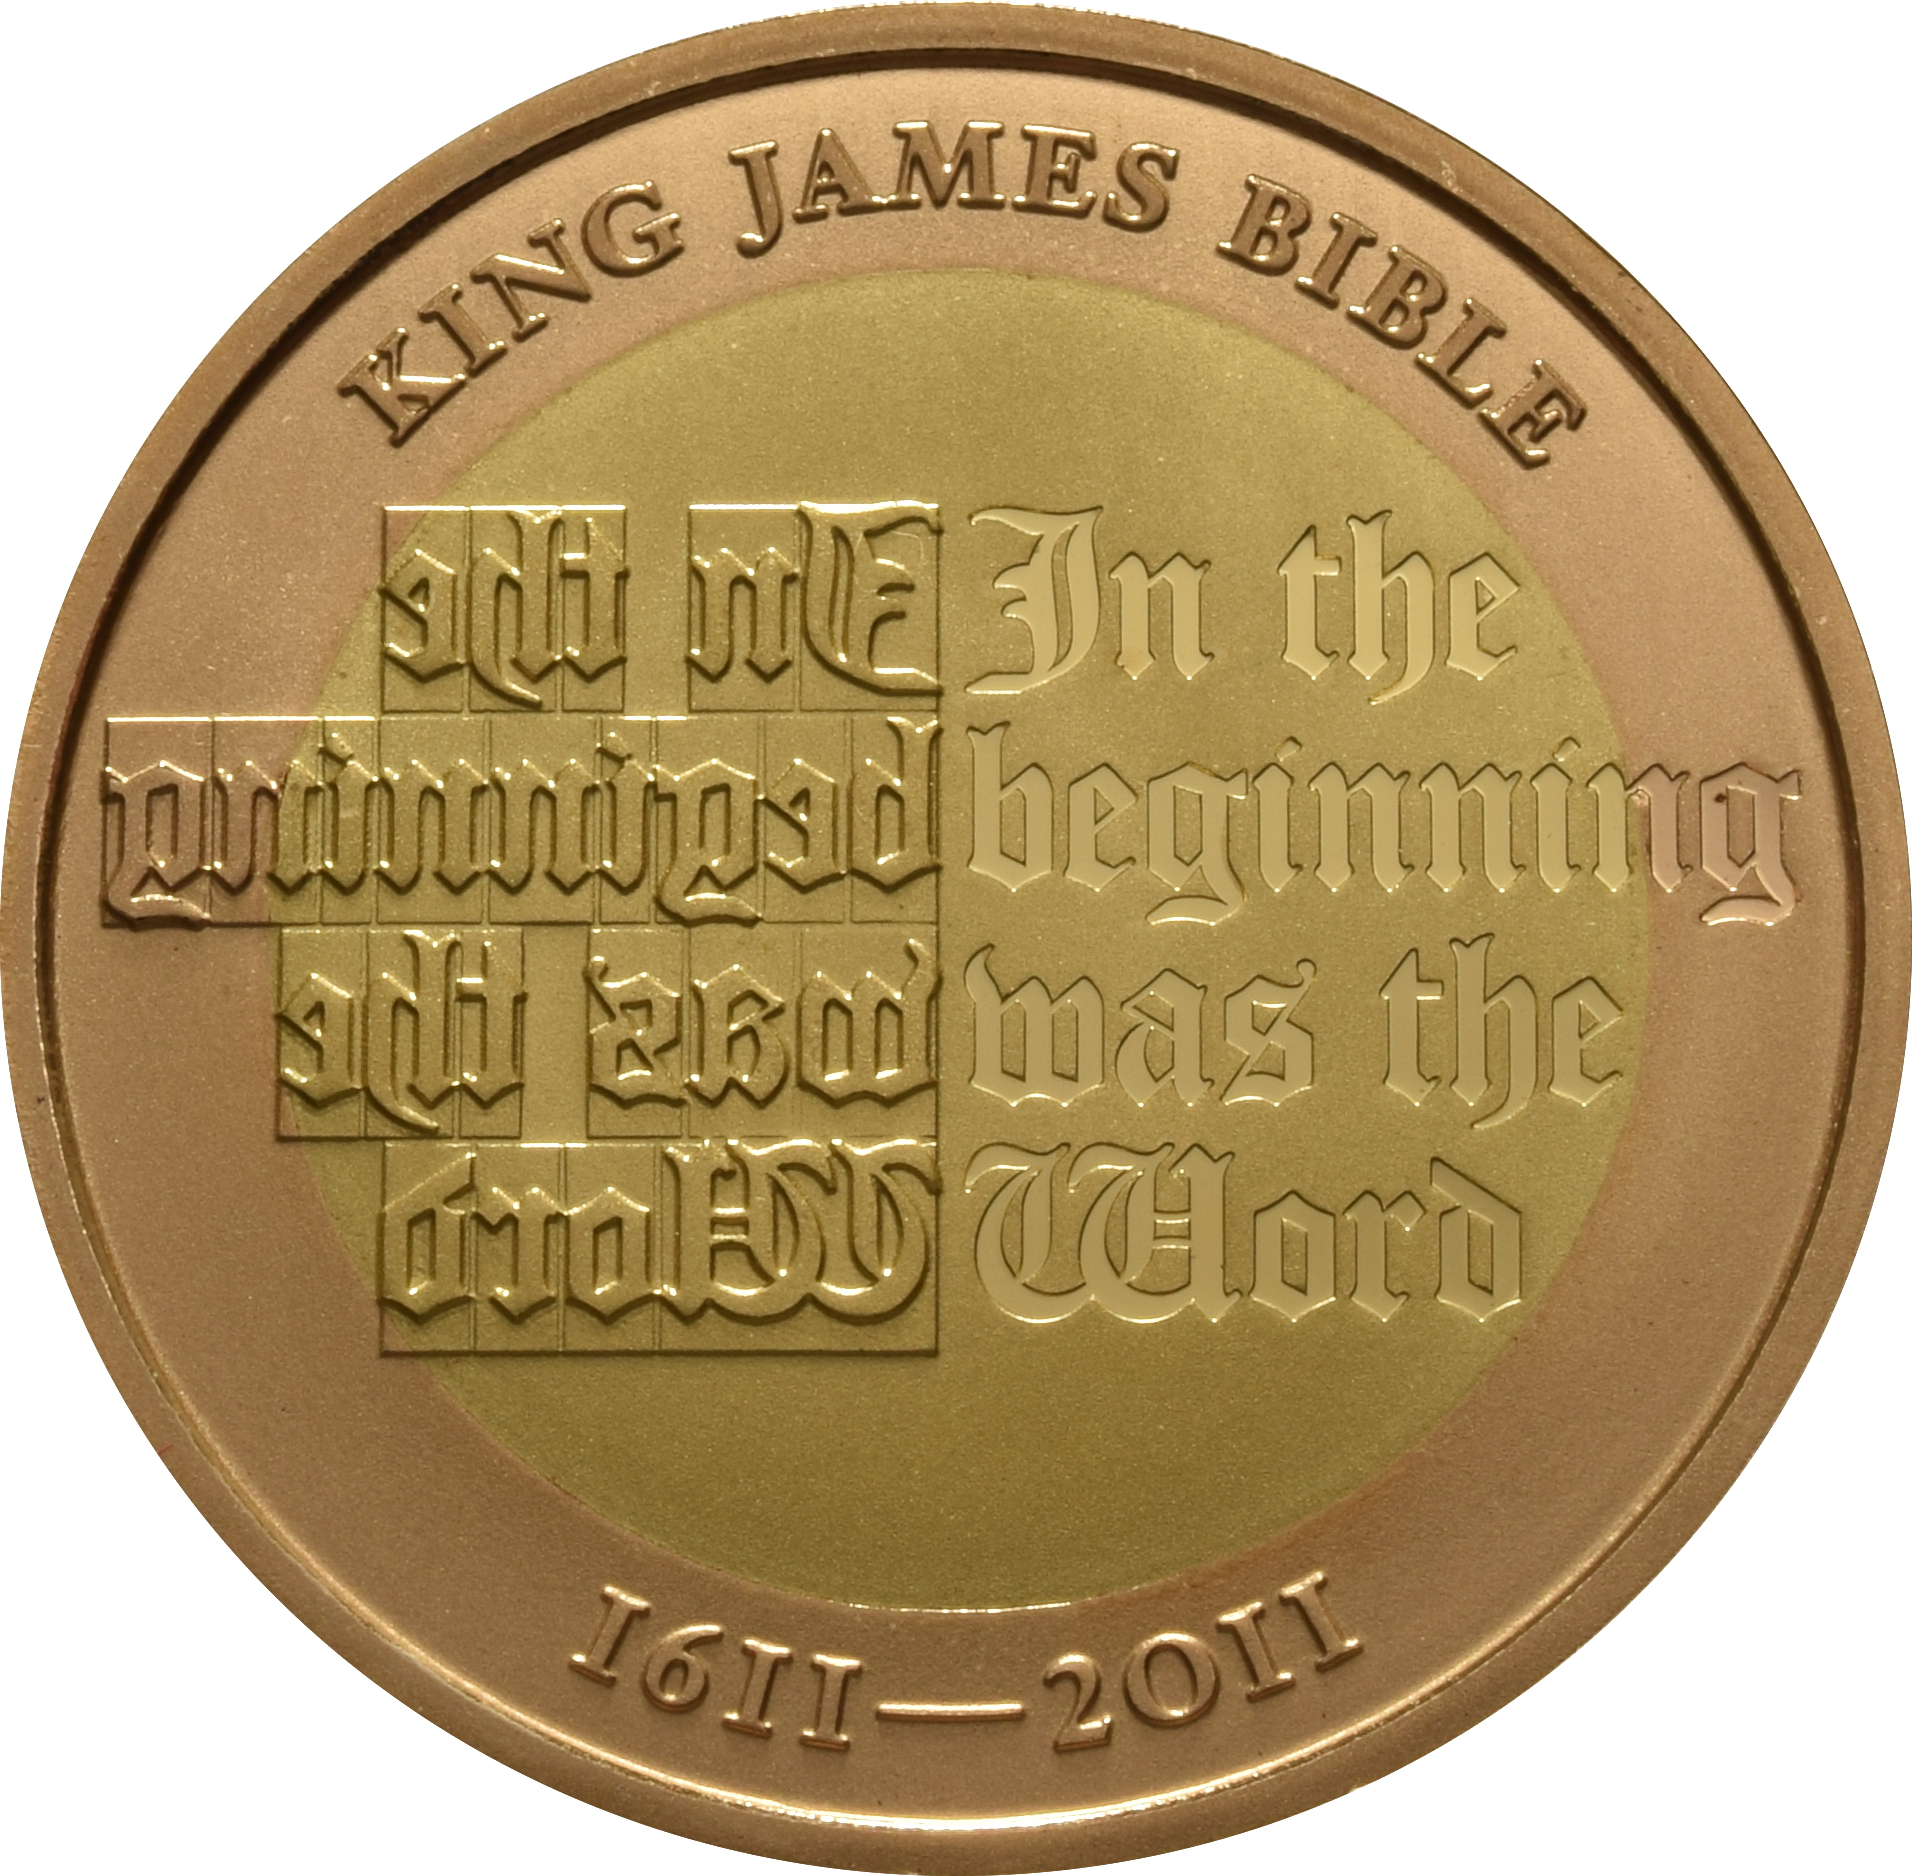 2011 Two Pound Proof Gold Coin King James Bible 163 909